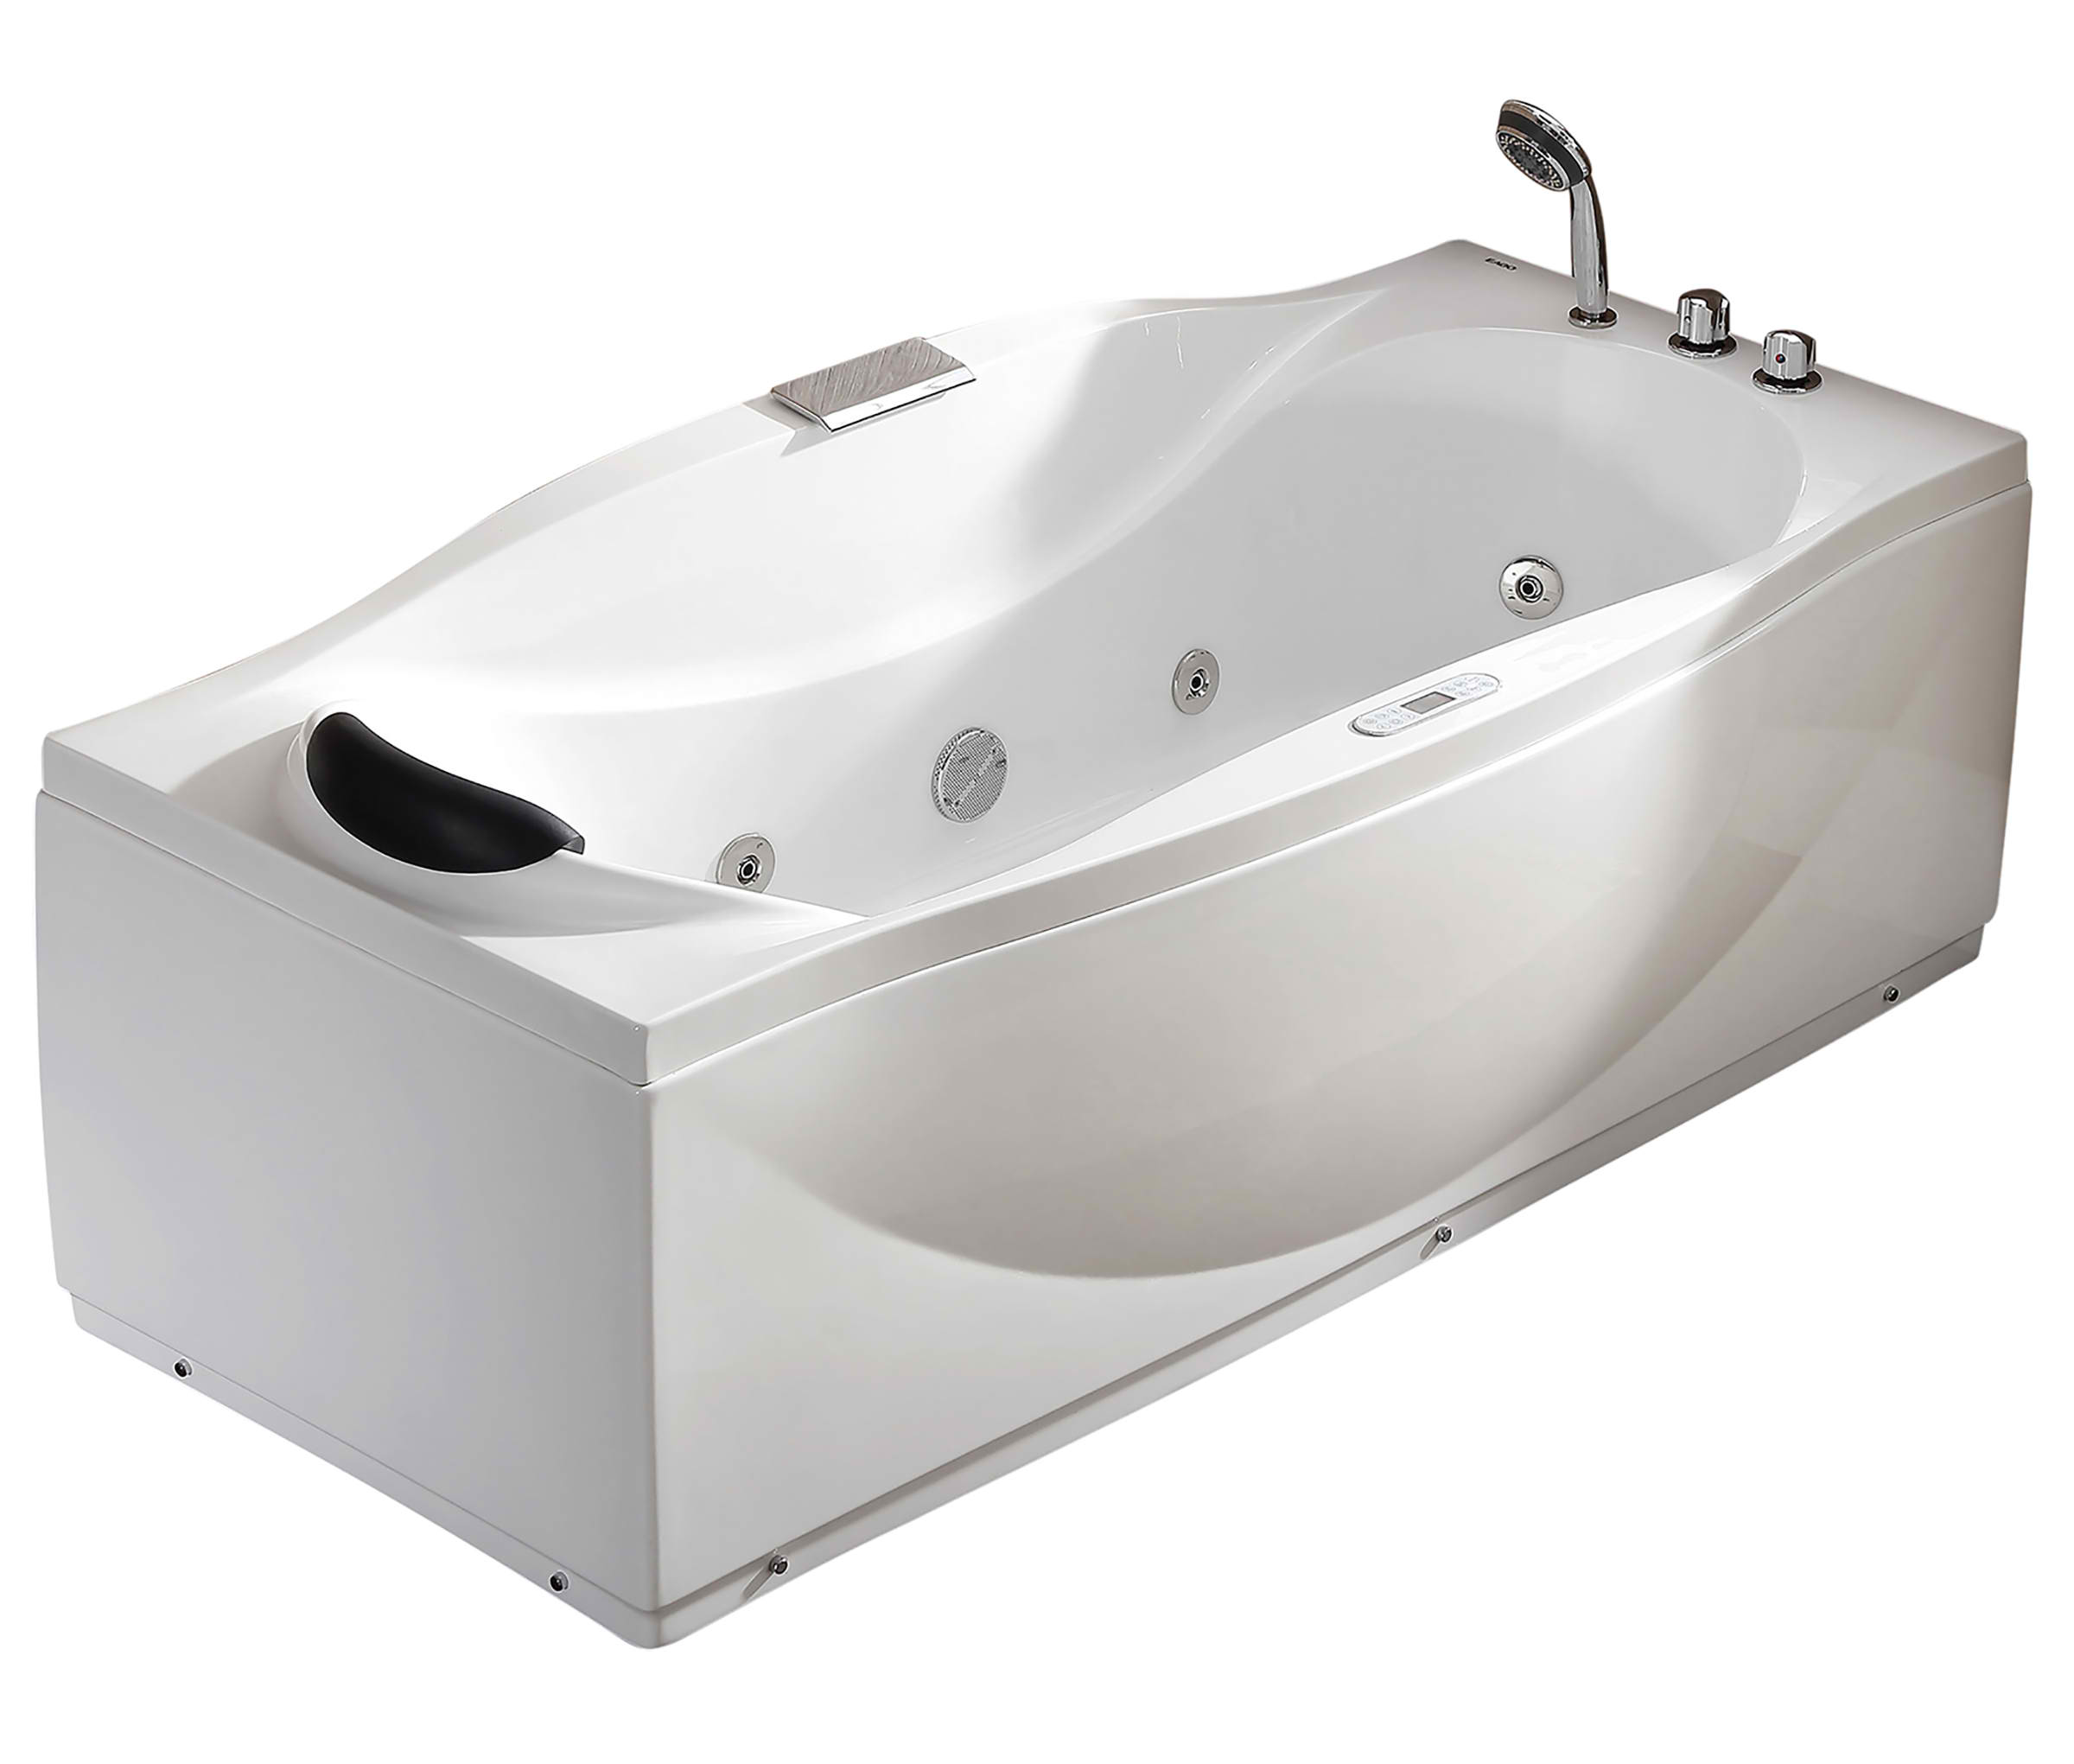 EAGO AM189ETL 6 ft Left or Right Drain Acrylic White Whirlpool Bathtub w Fixtures